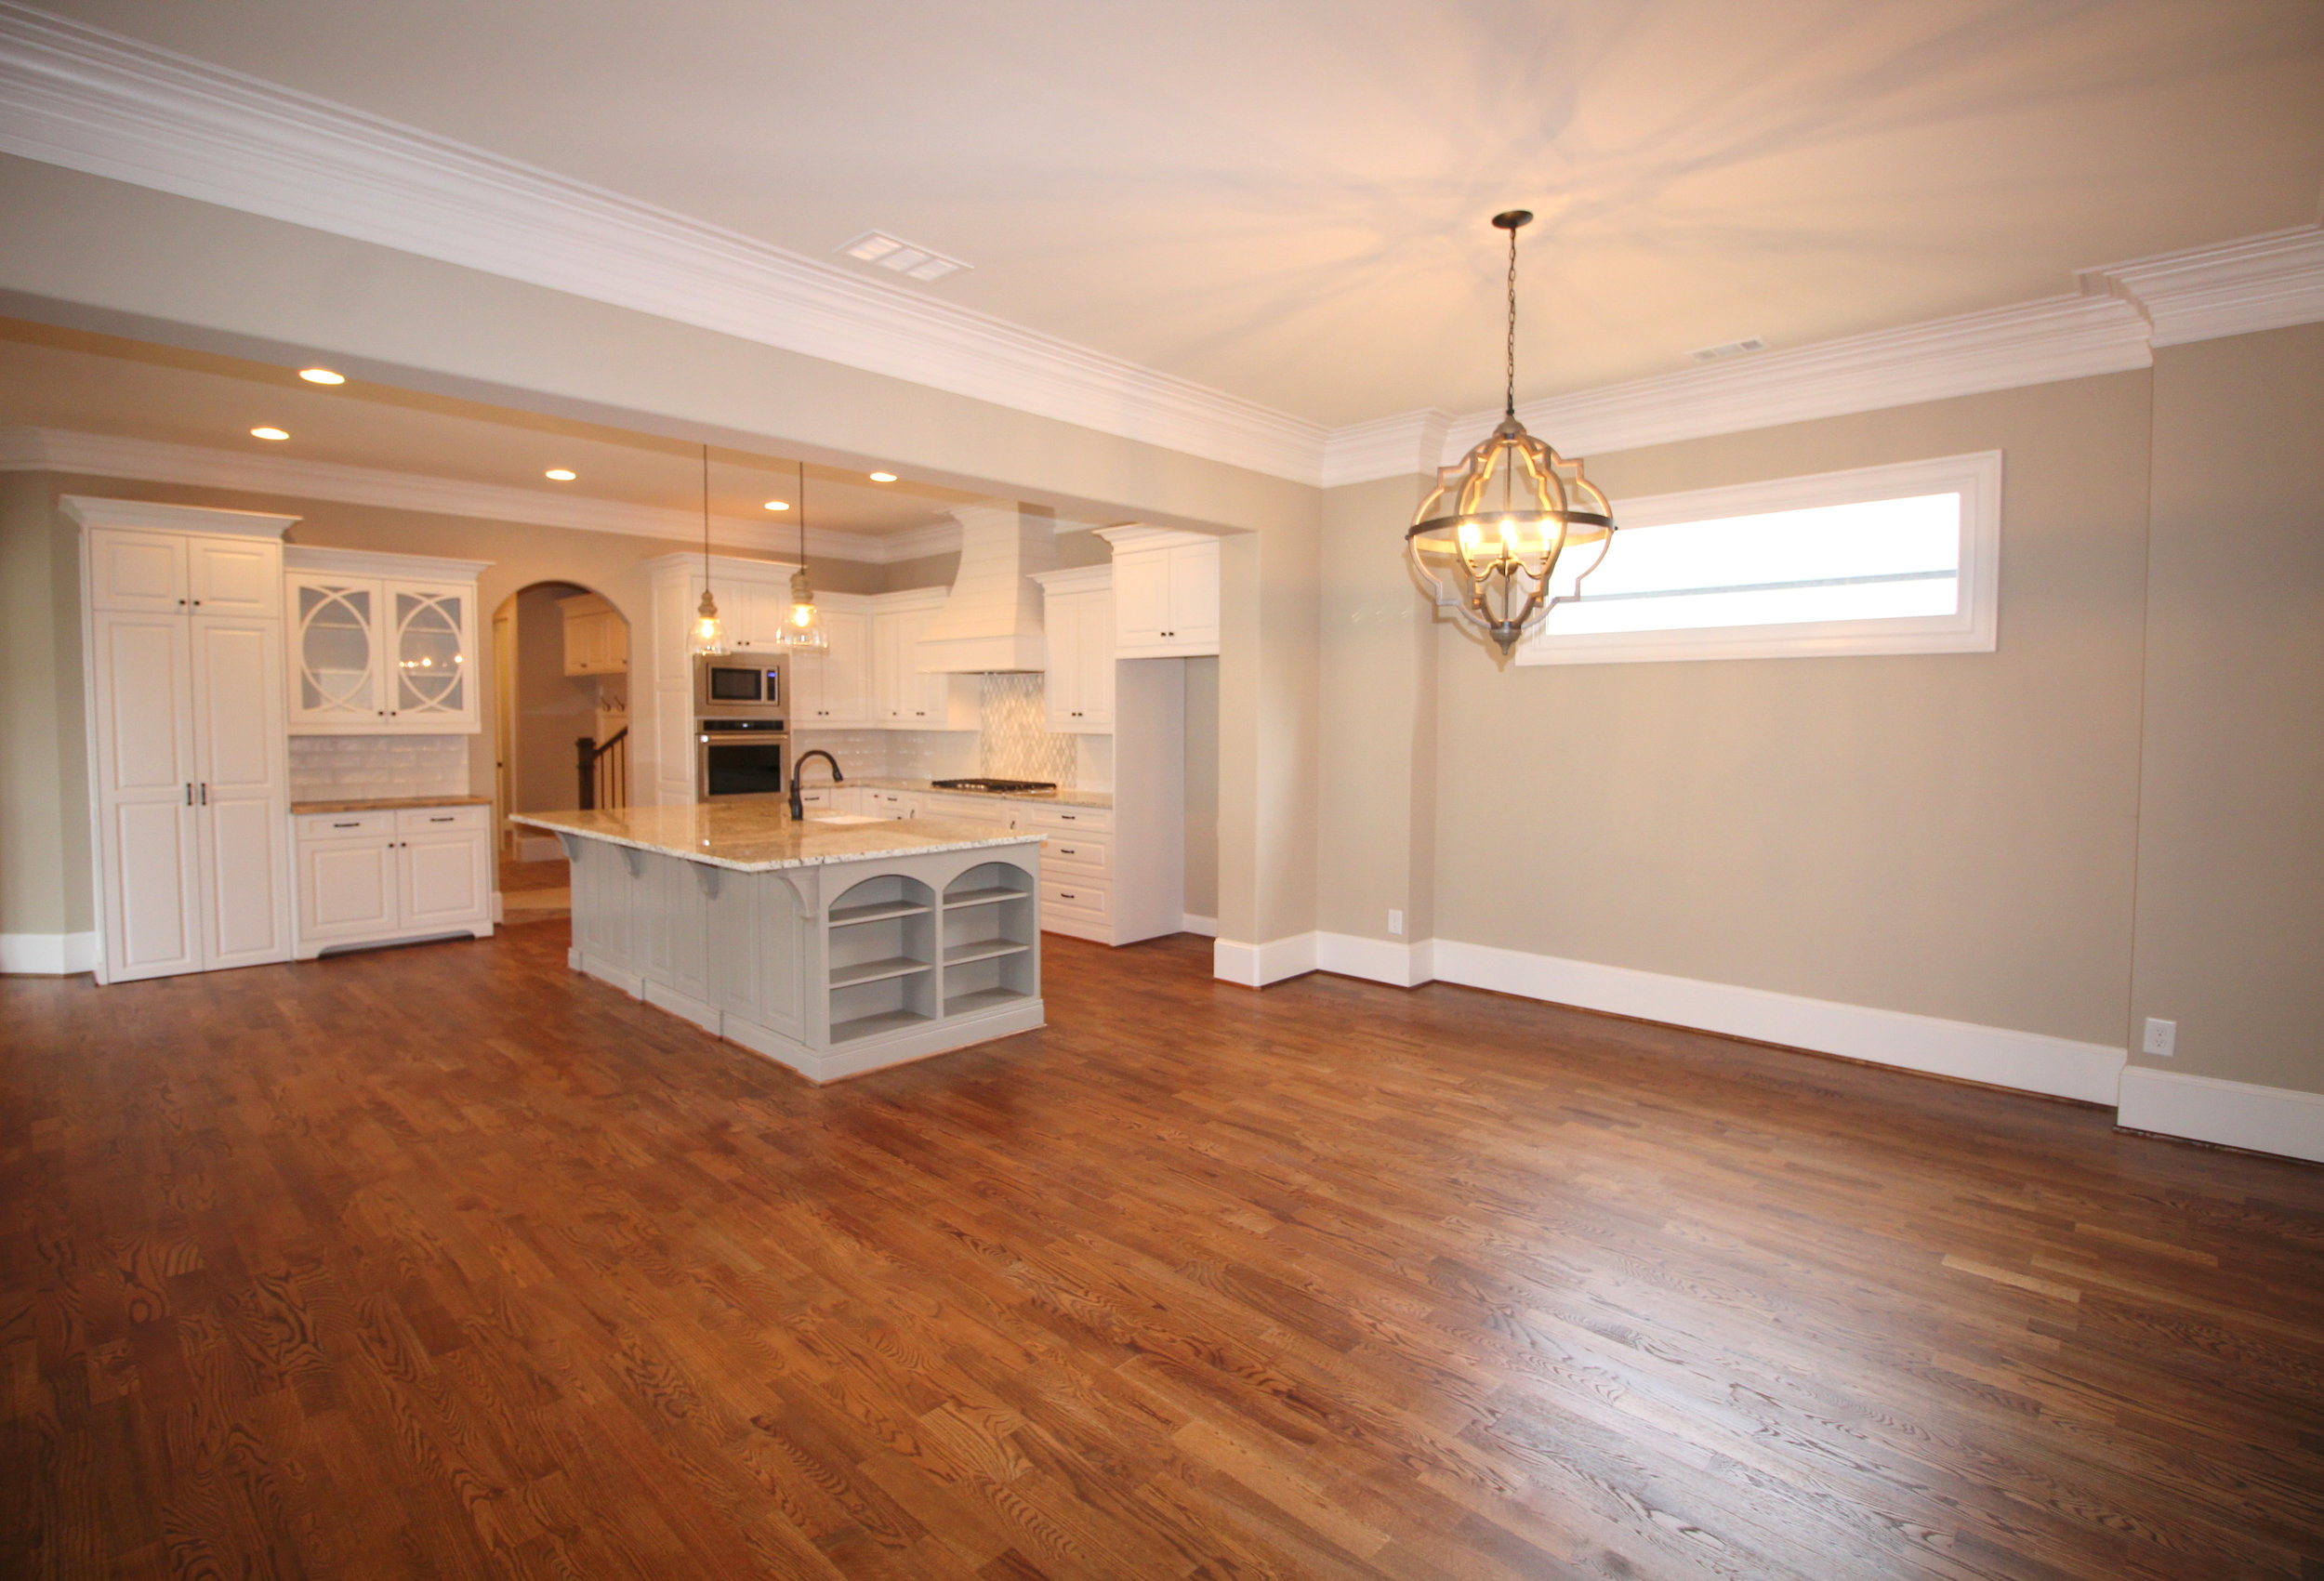 large-open-kitchen-1756-greenleffe-drive-statham-ga-30666-the-georgia-club-oconee-county-oconee-springs-athens-area-home-for-sale-courtyard-homes.JPG